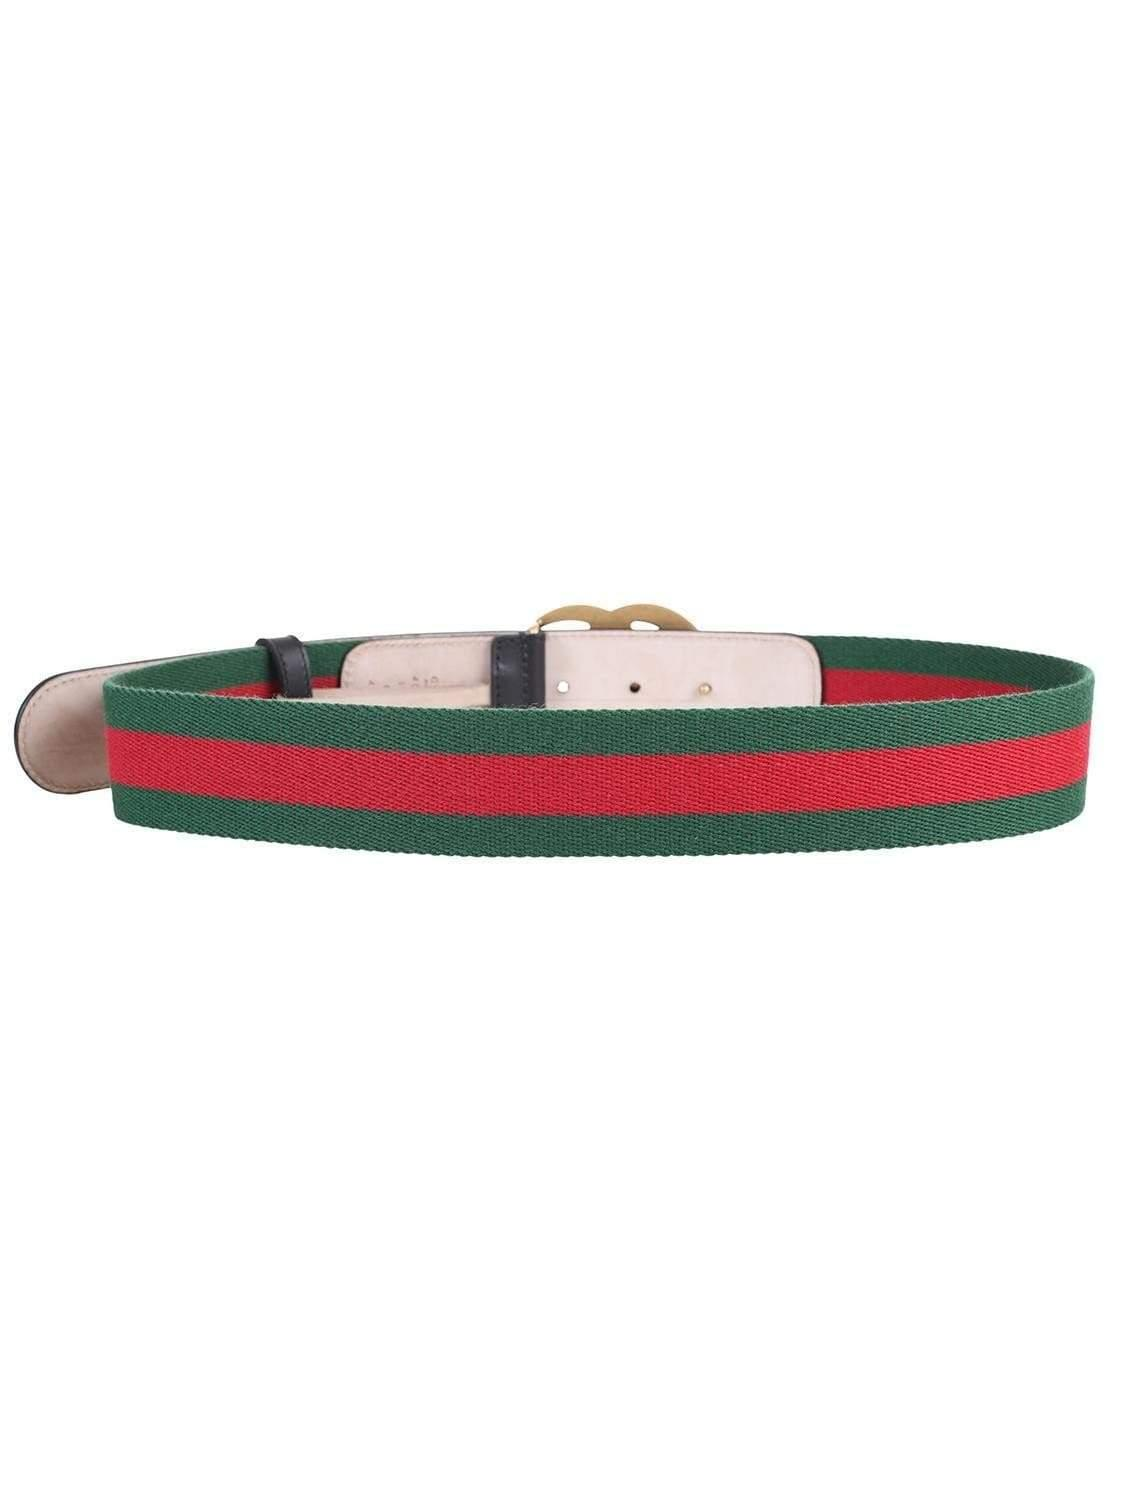 ff2d135f368 Gucci Green   Red Web Gg Belt in Green - Save 2% - Lyst